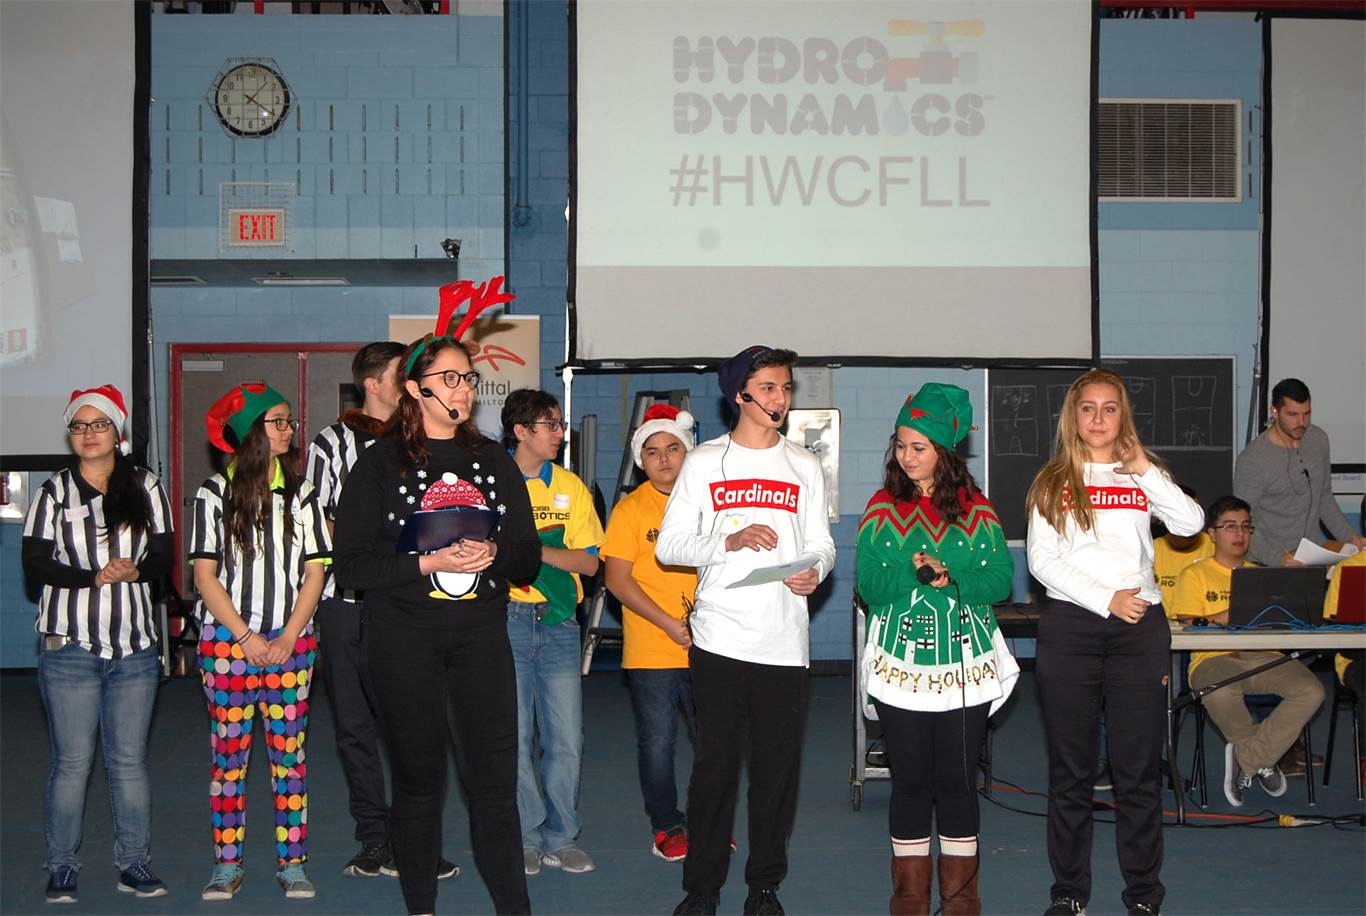 FIRST LEGO League also provides leadership opportunities for secondary students, who organize and plan the event. Serving as Masters of Ceremony at the Hamilton Qualifier were, from left to right, Dalia Dudalski (St. Thomas More), Matt Sbrissa (Cardinal Newman), Juliana Giannini (Cardinal Newman), and Anna Krzysztofinski (Cardinal Newman).